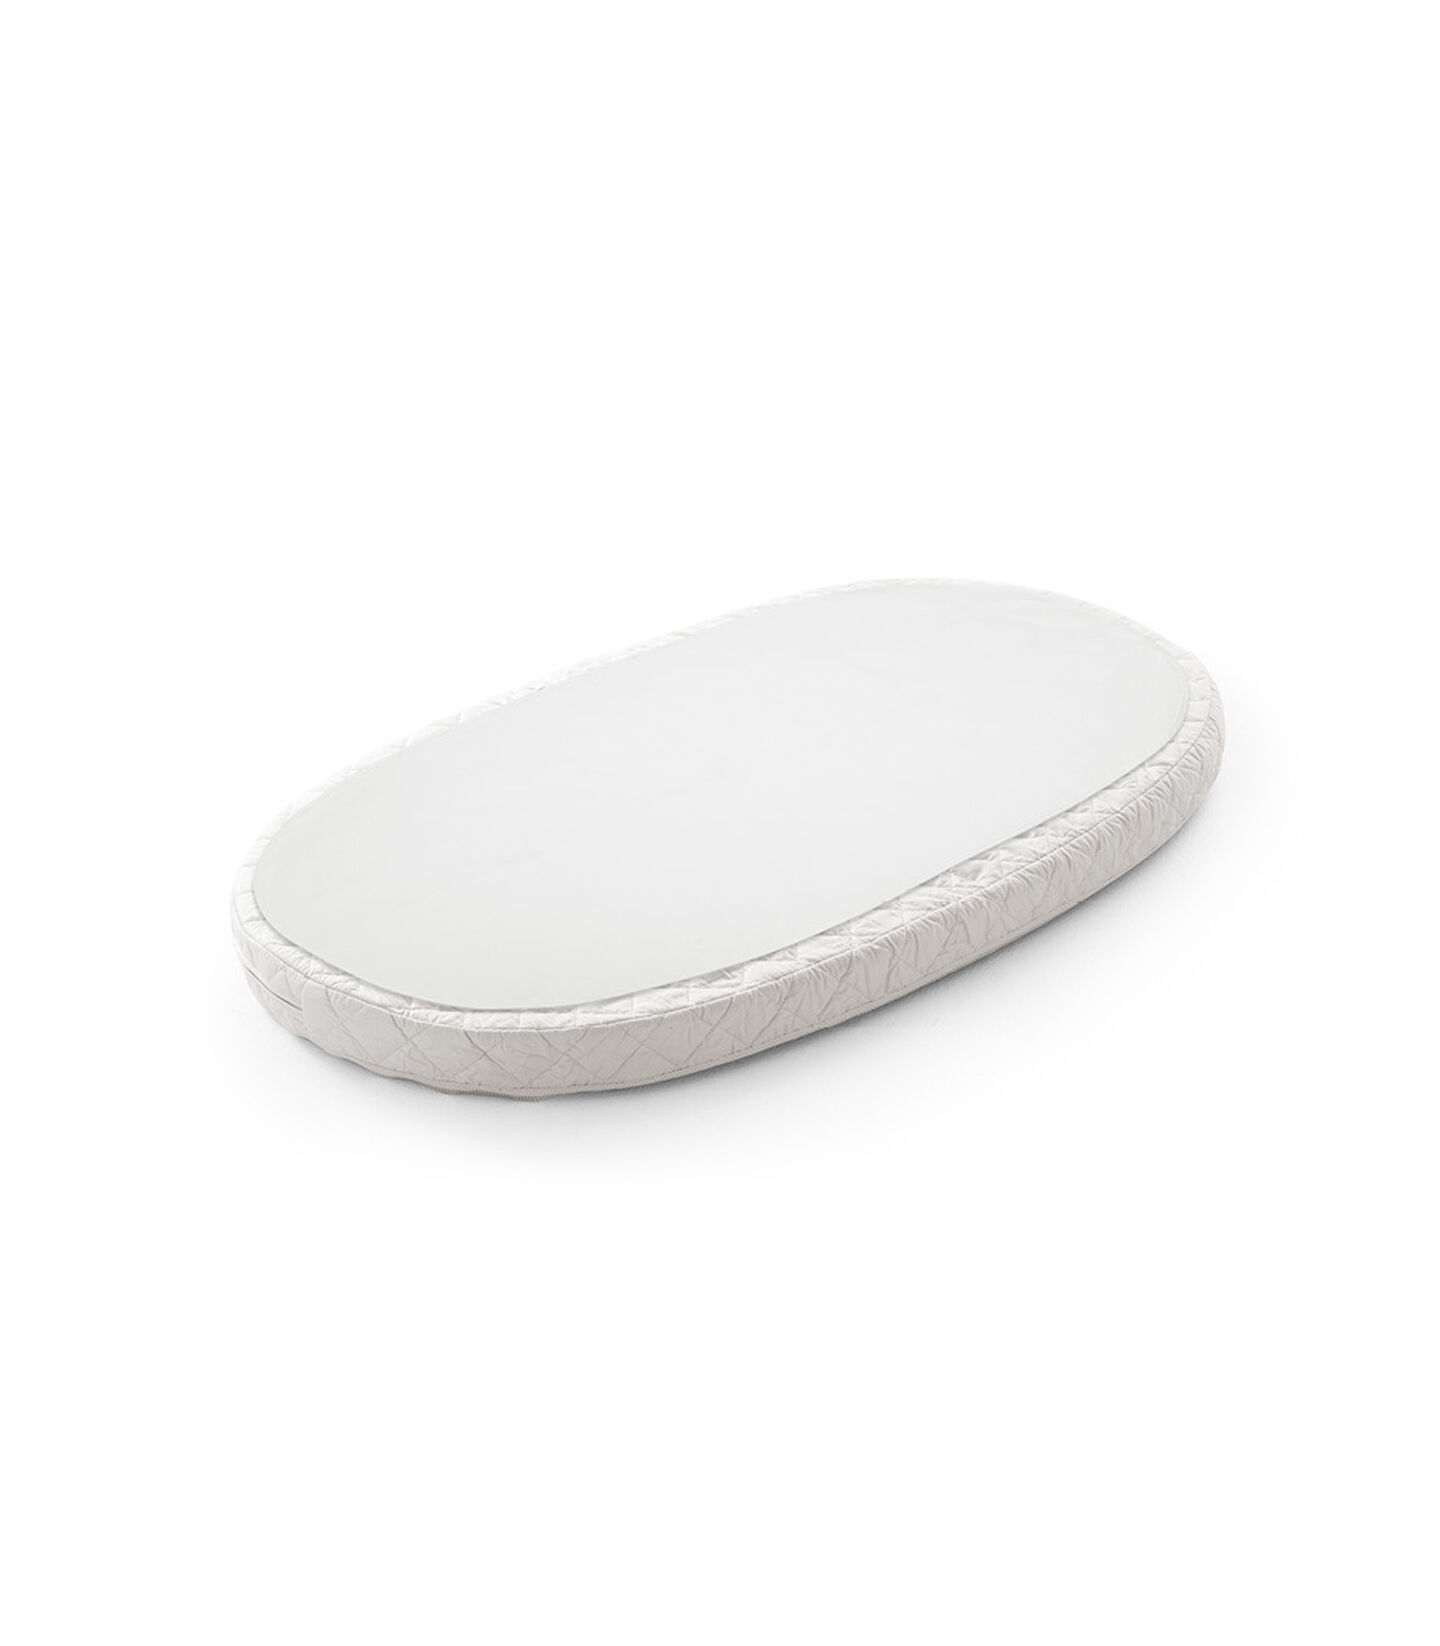 Stokke® Sleepi™ Protection Sheet Oval, , mainview view 2